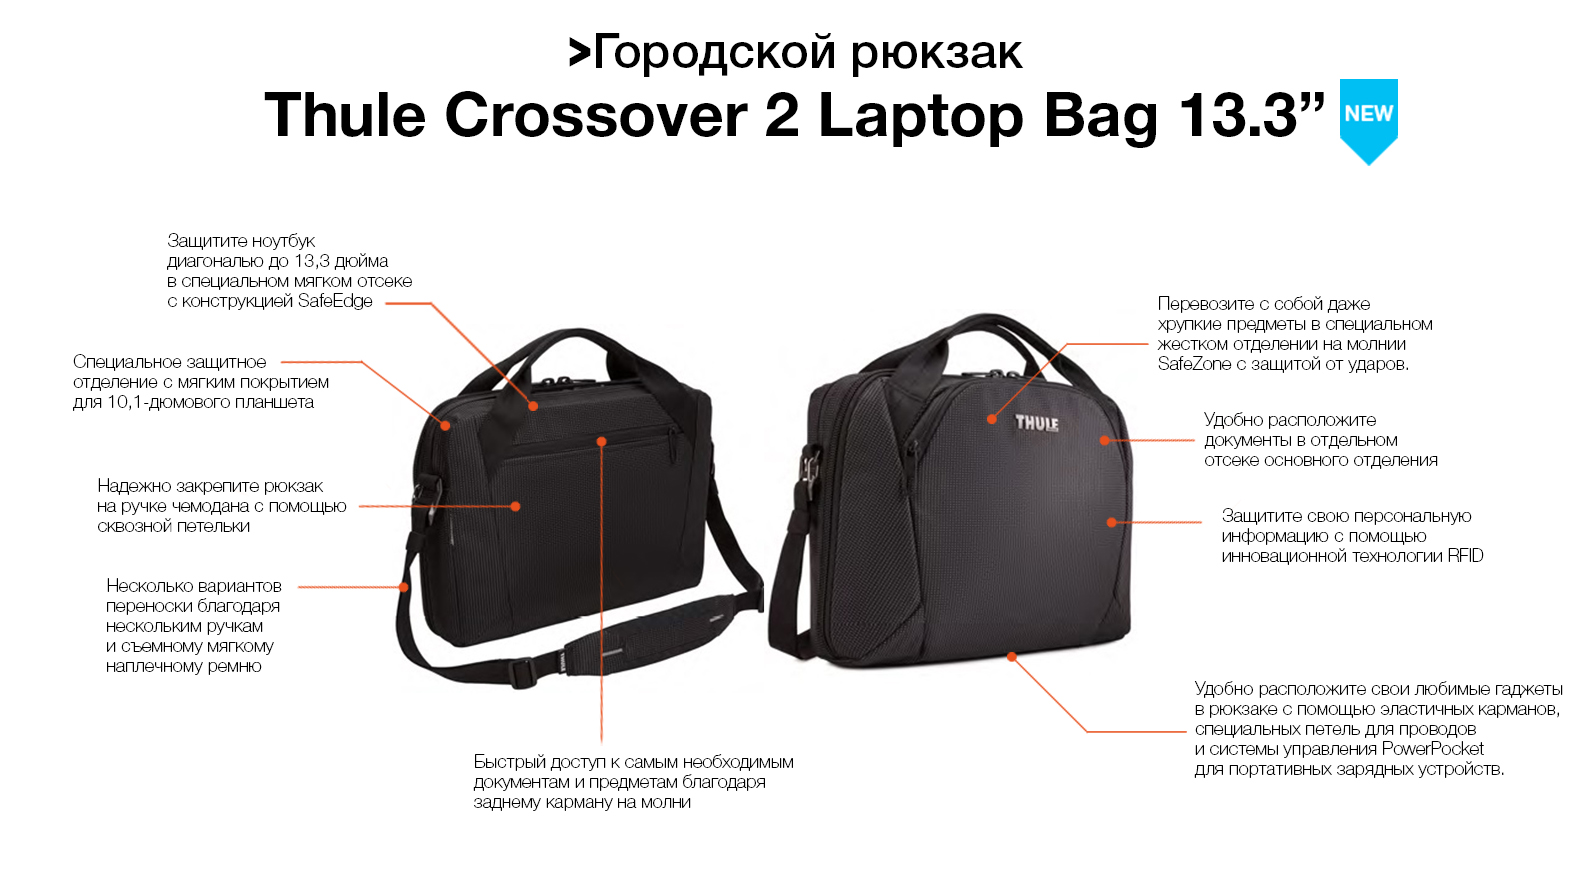 инфо Thule crossover 2 laptop bag 13,3'